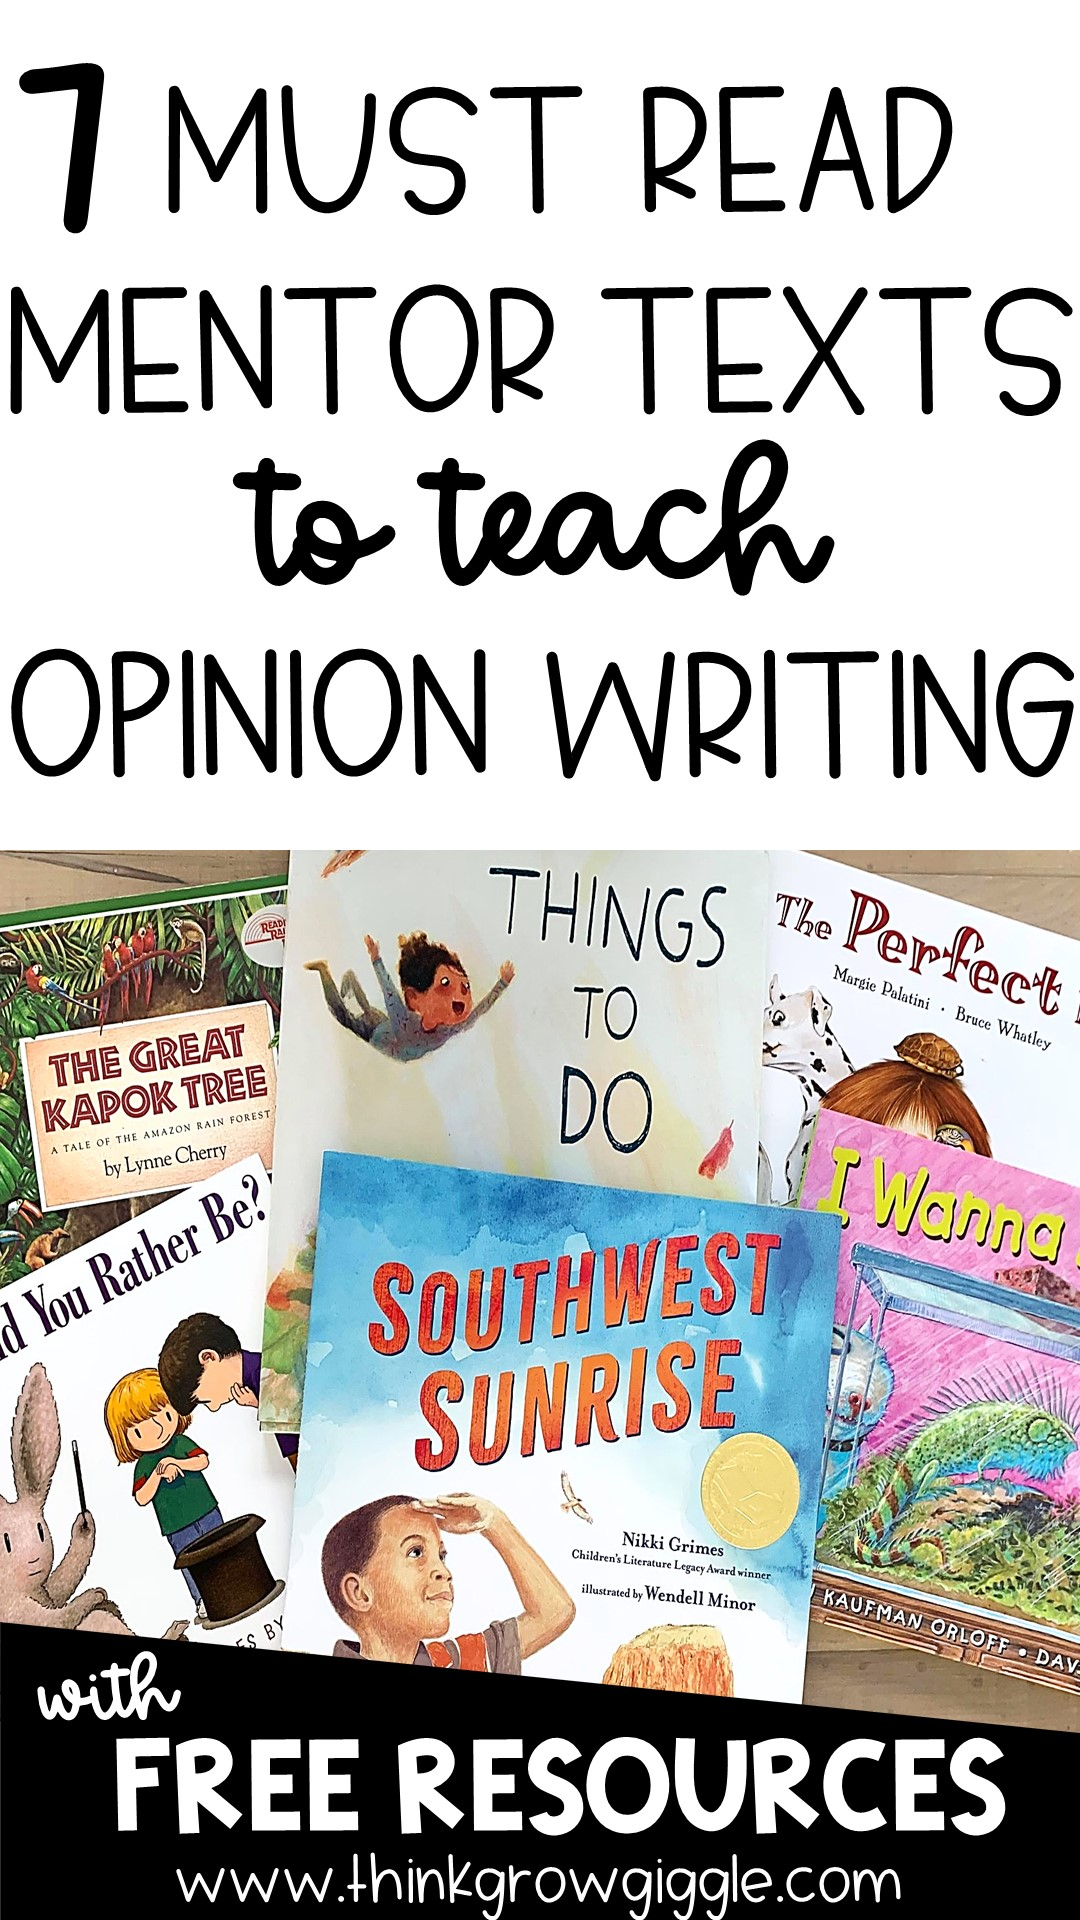 opinion writing lesson plan ideas for kids